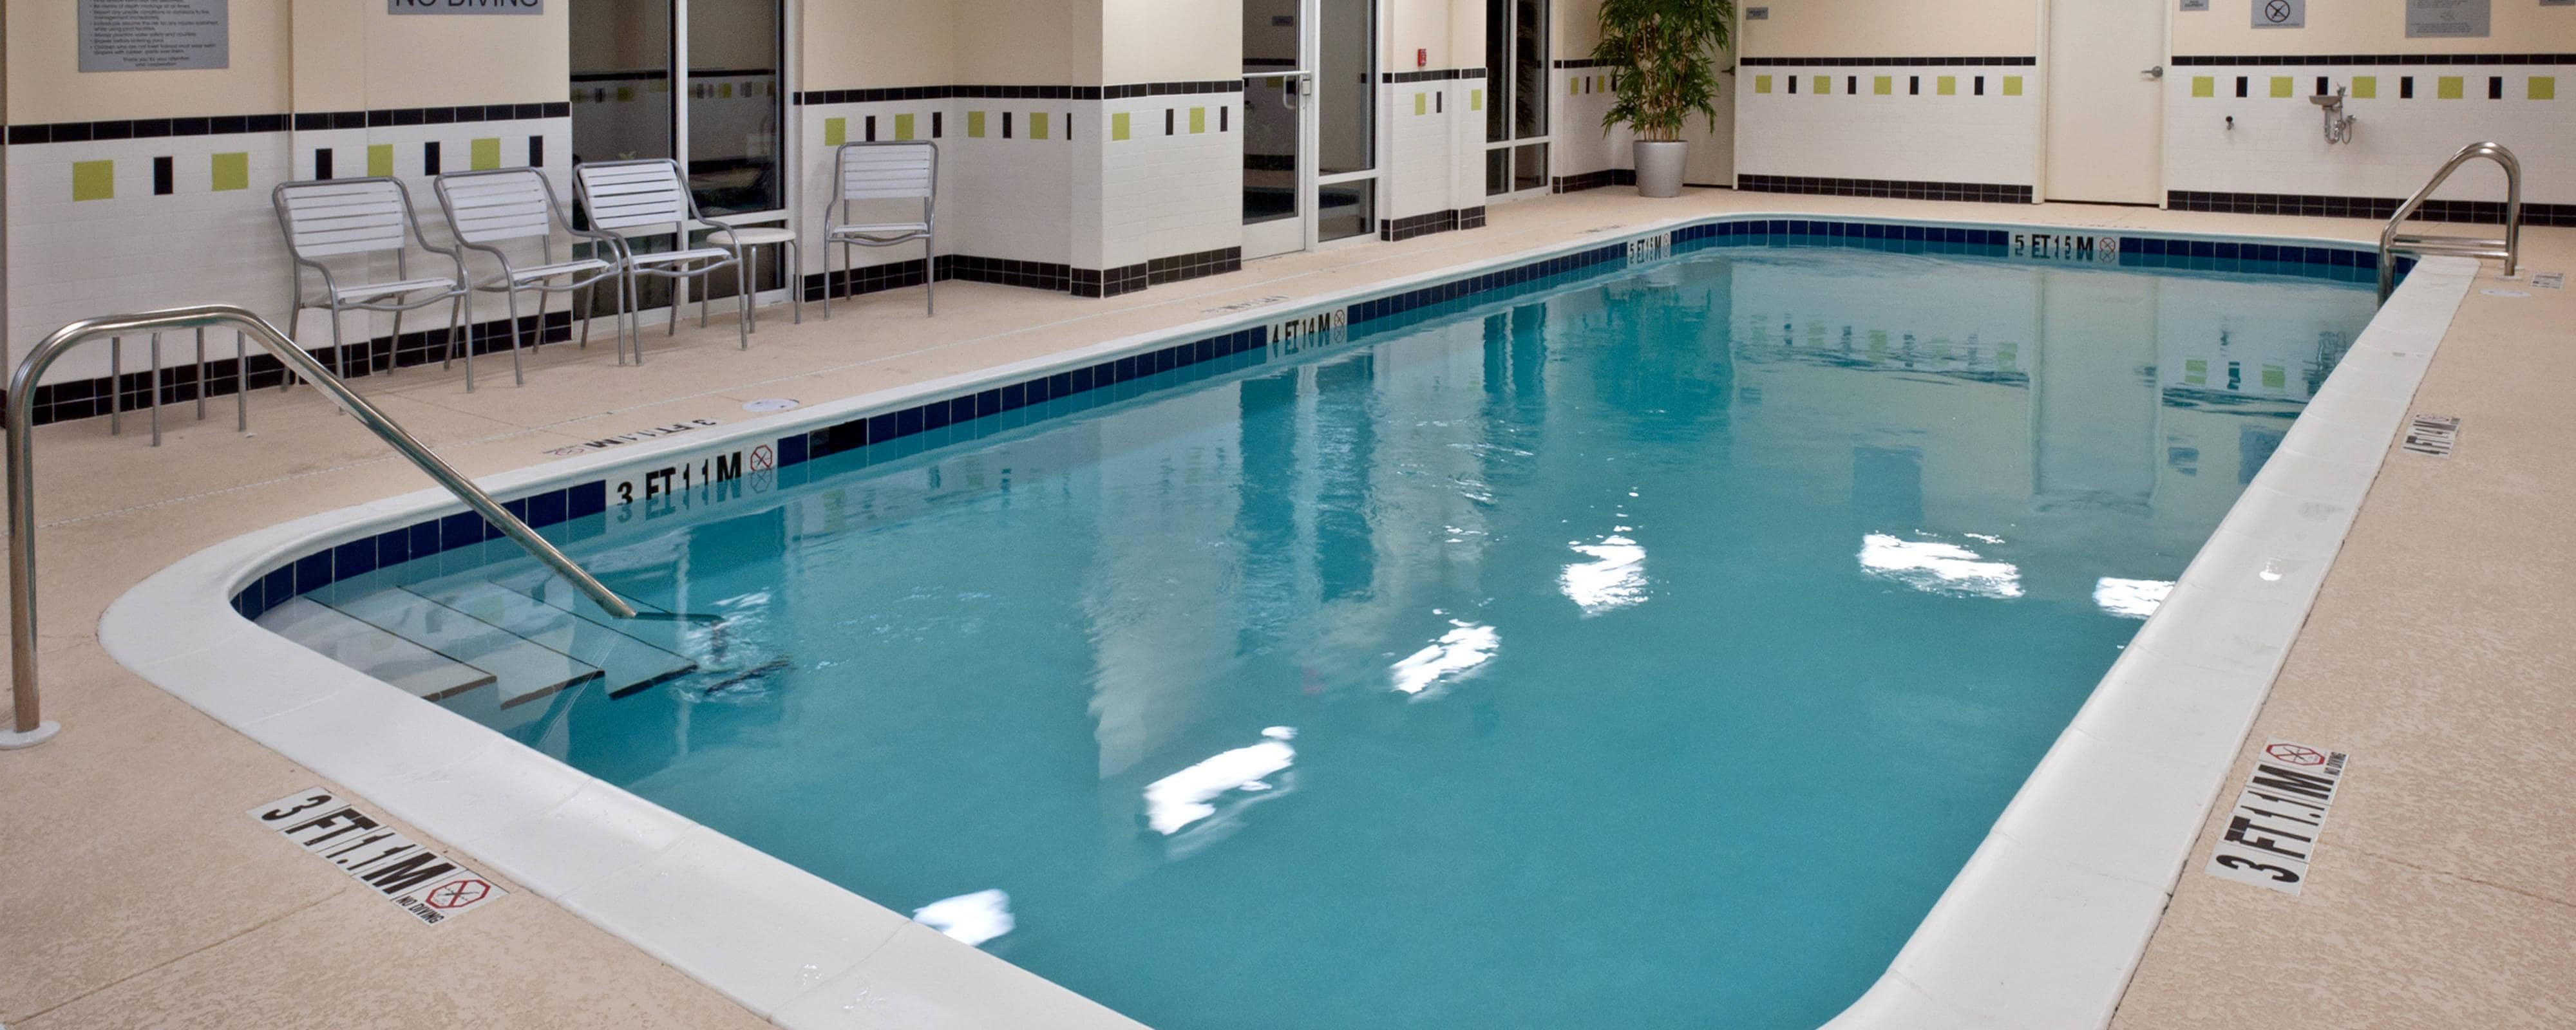 Pool - Hotels in Tallahassee, FL